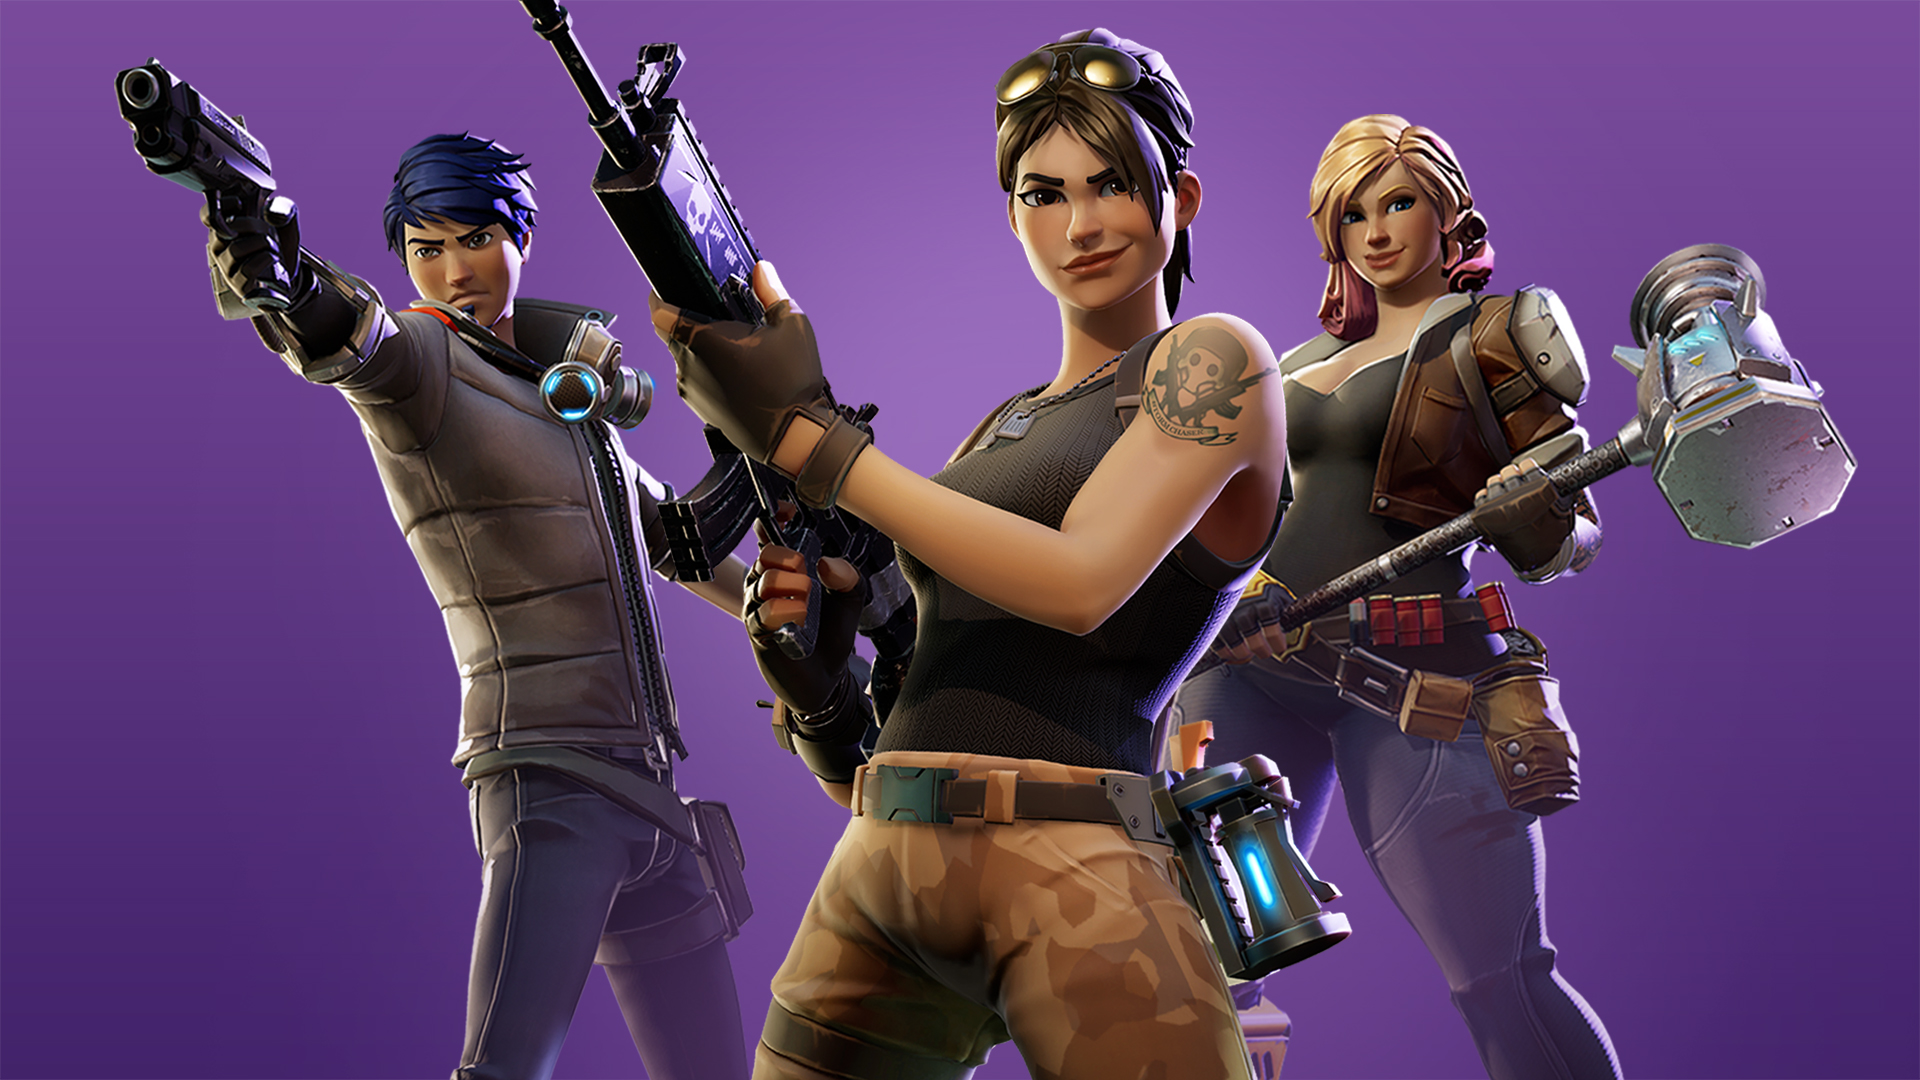 Fortnite Save the World will not be going free-to-play